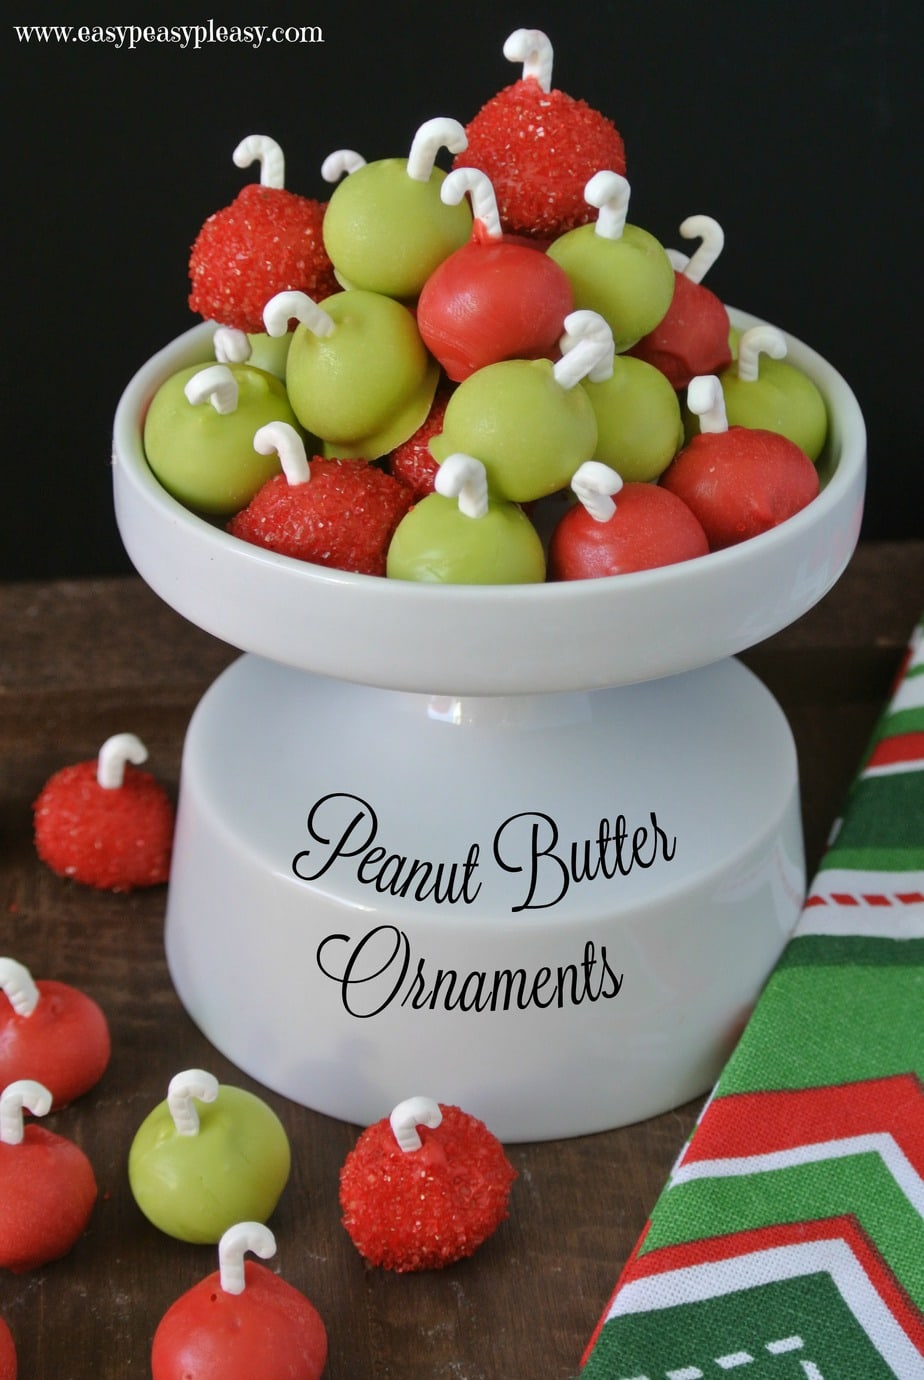 Snack archives easy peasy pleasy easy 3 ingredient peanut butter ornaments are the perfect christmas treat solutioingenieria Image collections